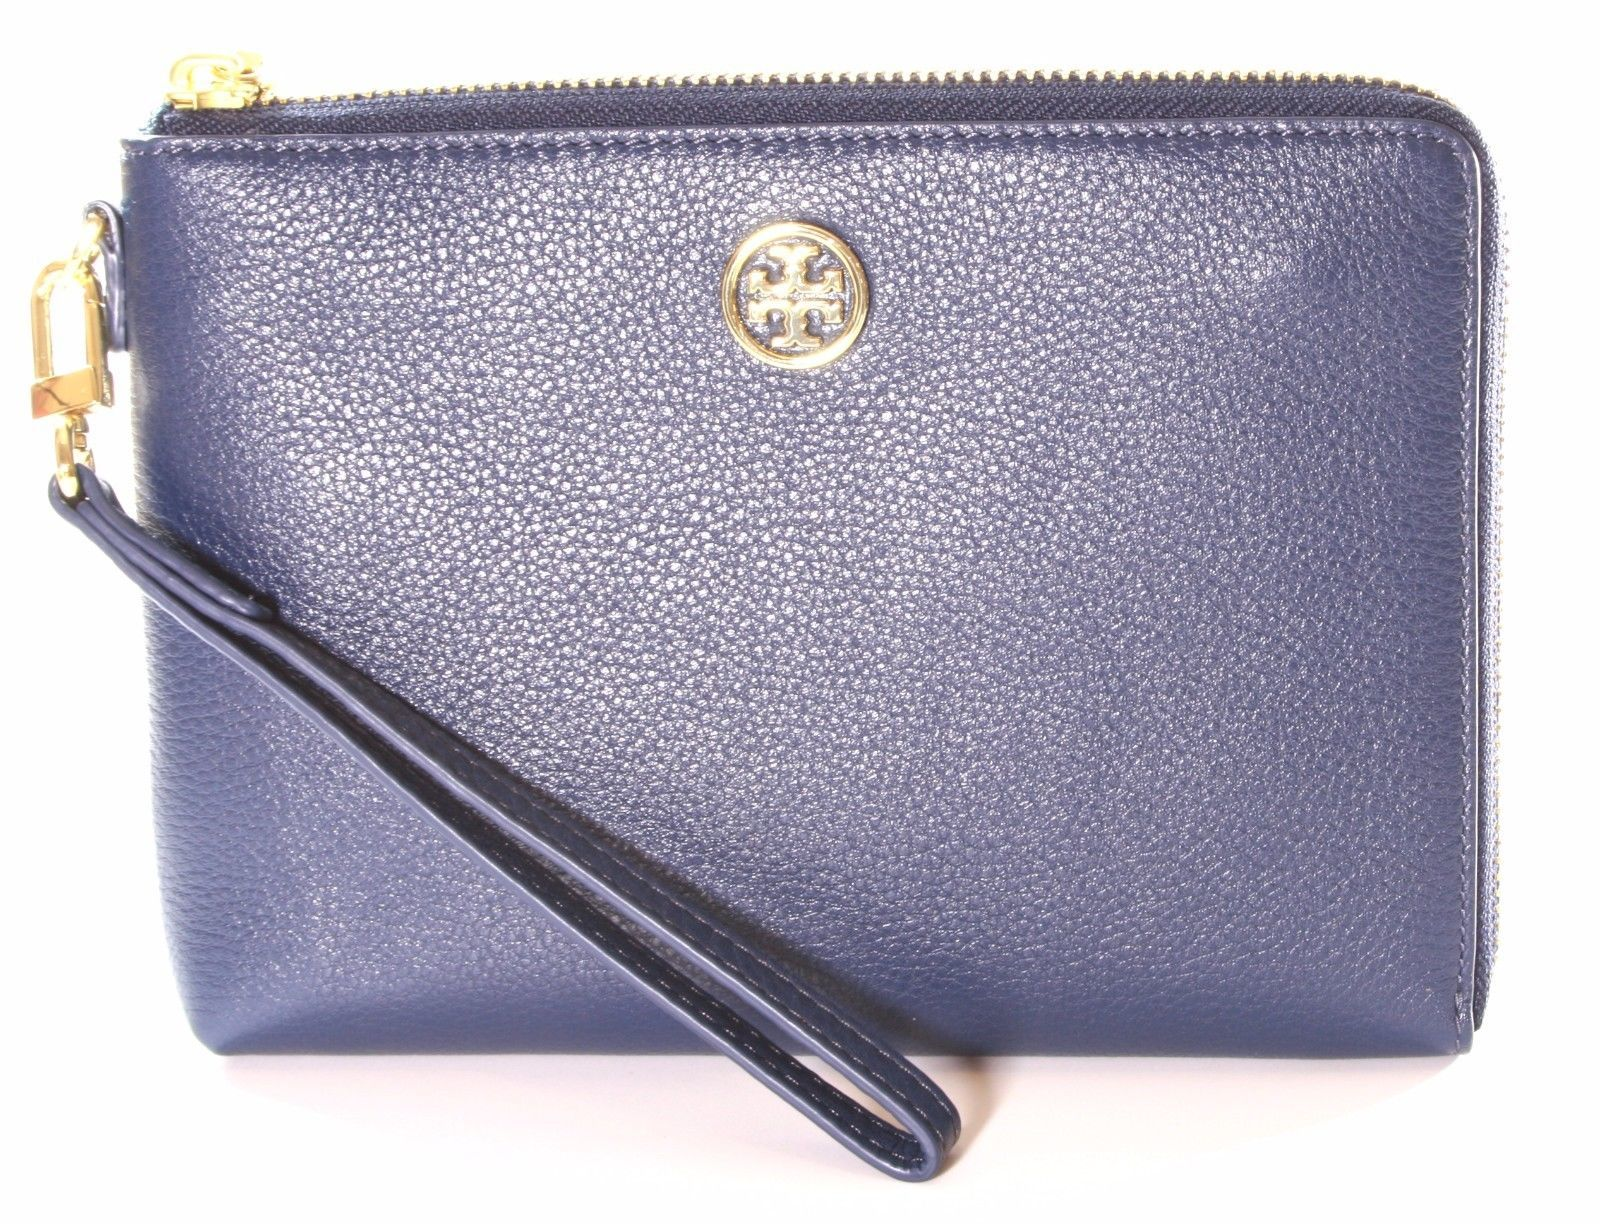 Primary image for Tory Burch Landon Large Leather Zip Around Wristlet Hudson Bay Blue RRP £165